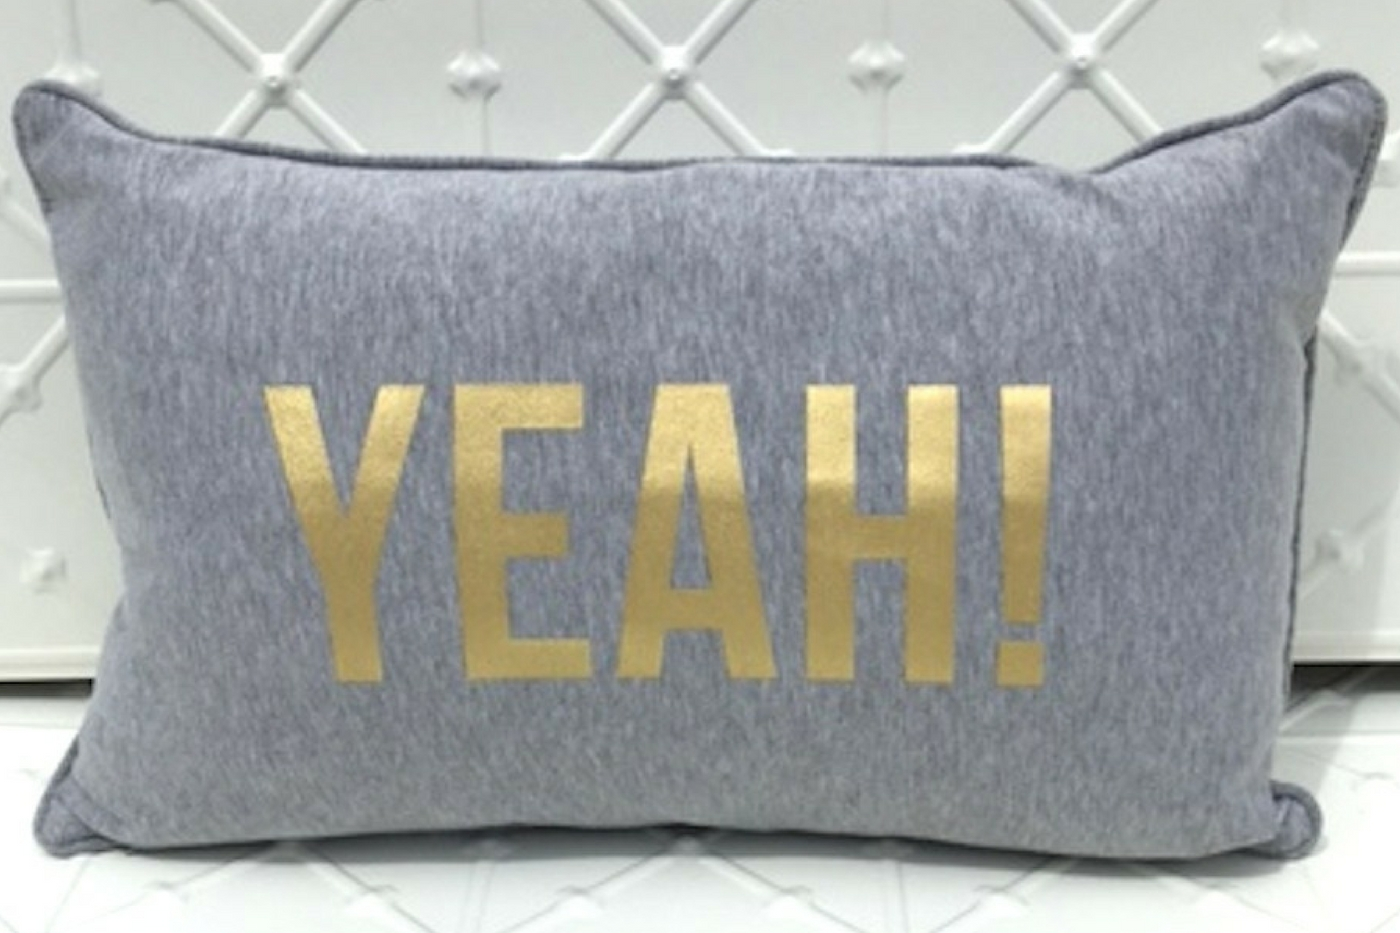 Cushion with 'YEAH' printed in gold, indicating style of textiles for wedding and event hire.